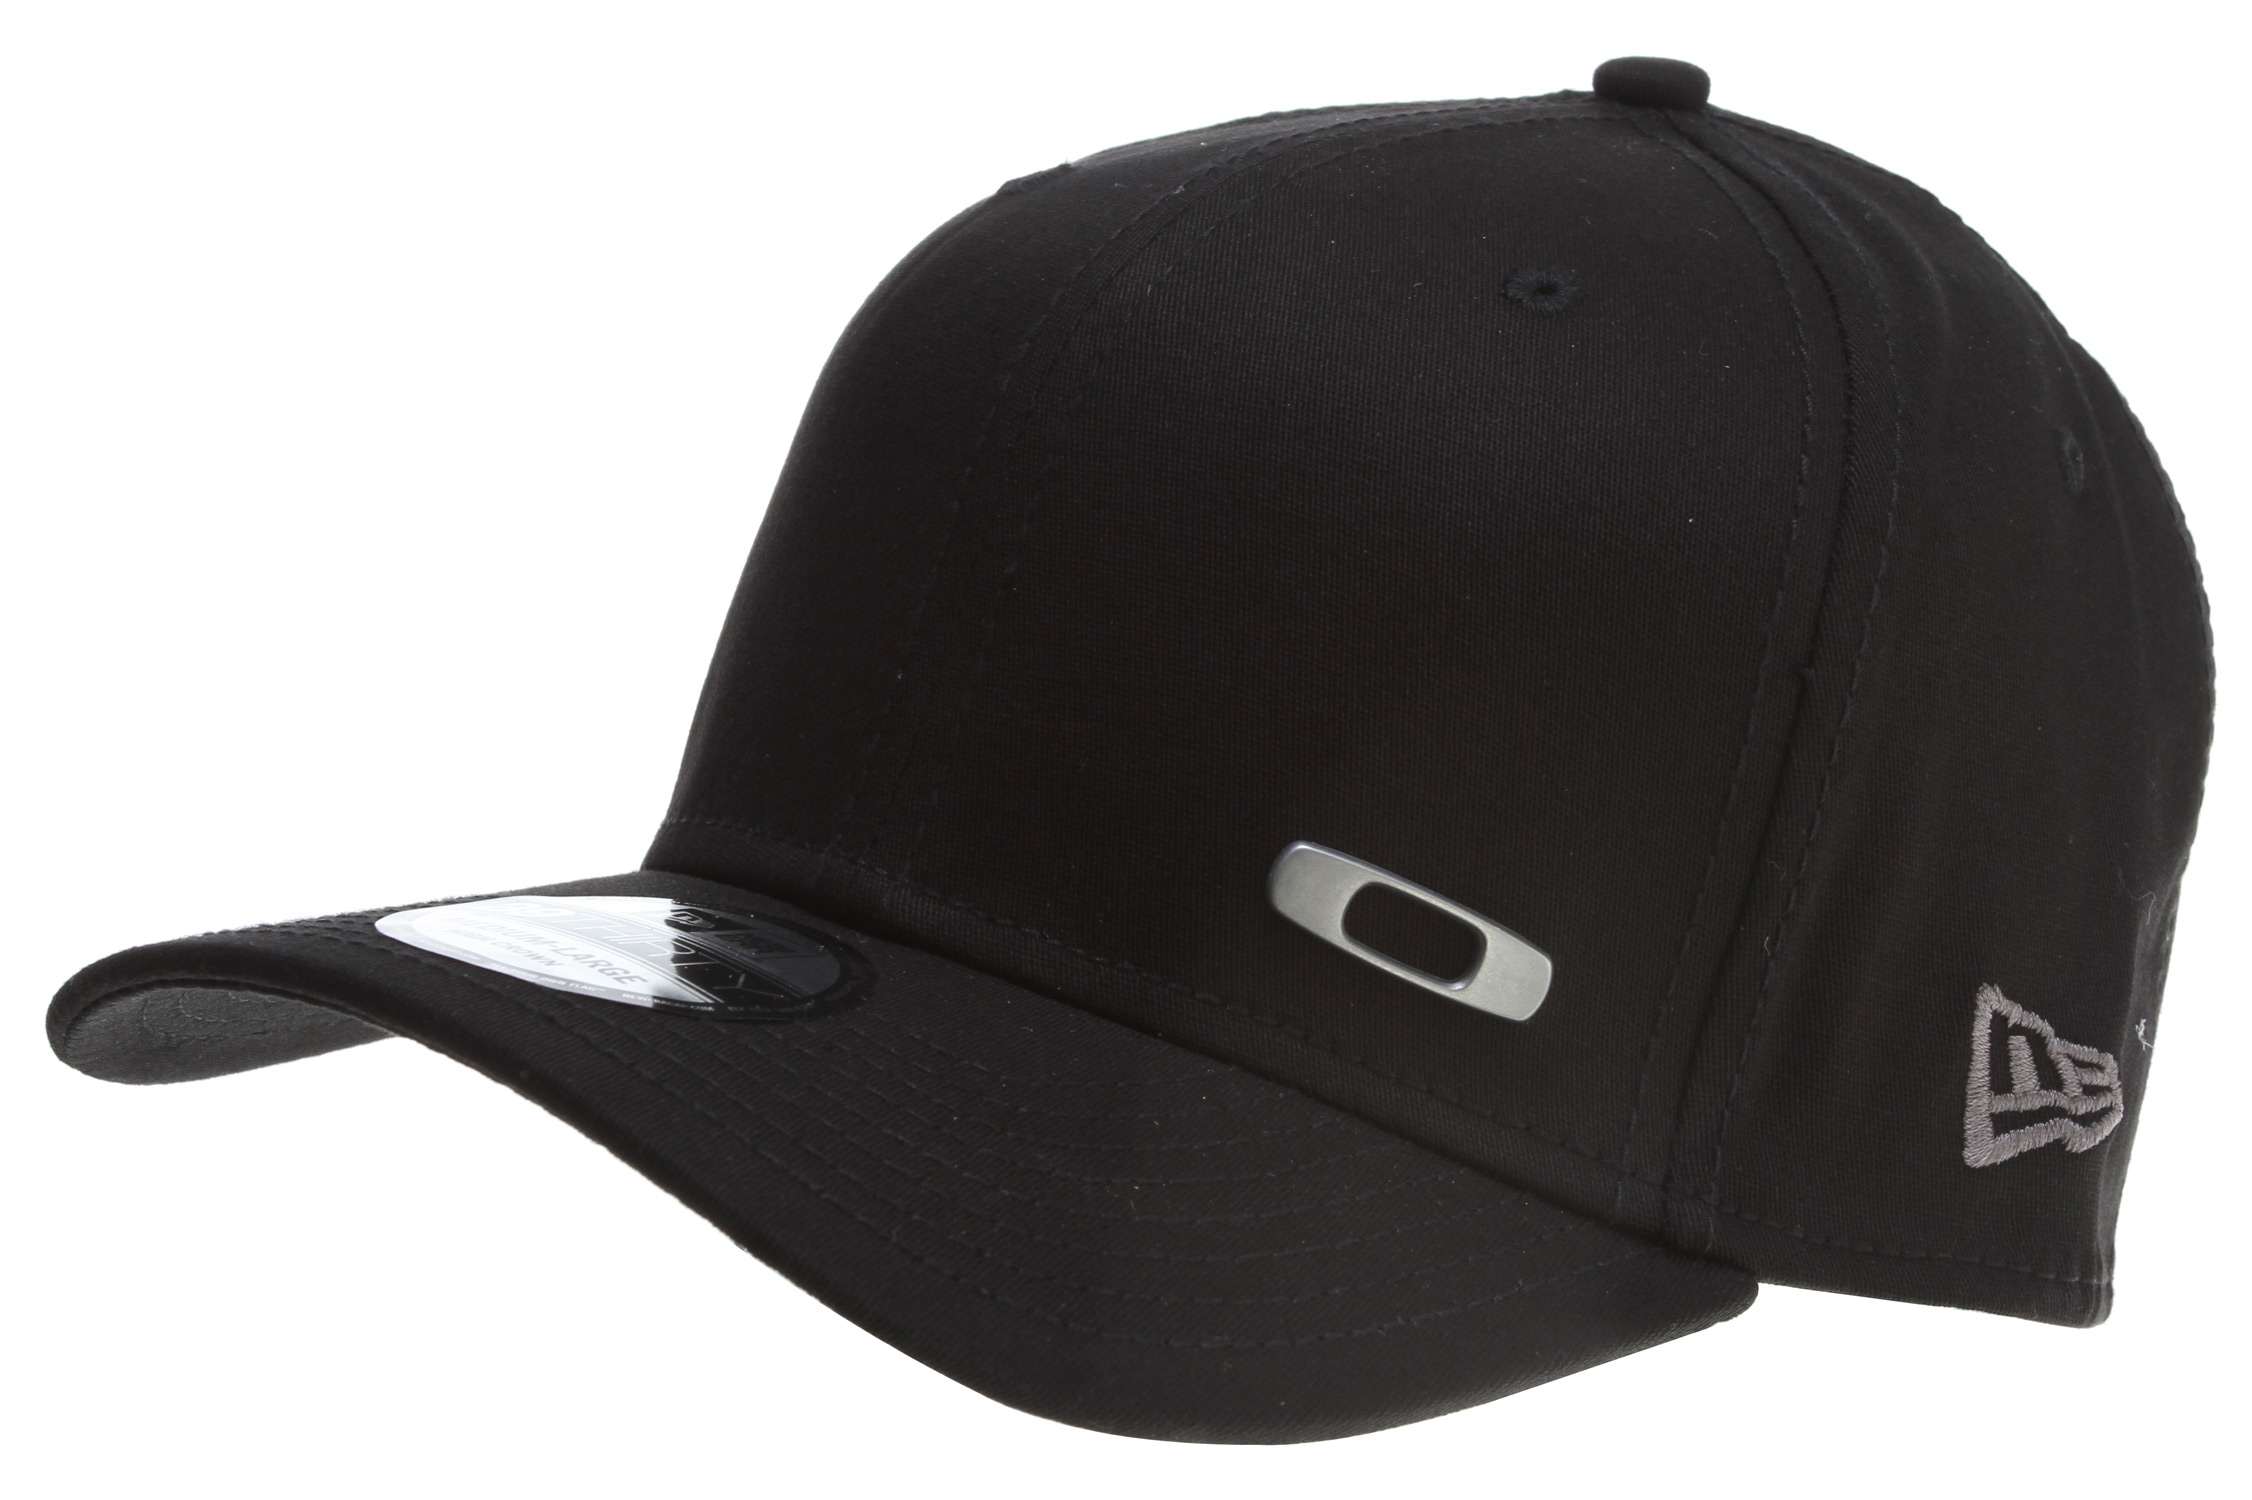 A stretchy fit teams up with a classic, curved-brim cut in the Metal Square O hat, designed for the easy-going look and durable comfort that never gets old. This high-crown New Era hat incorporates eyelet venting and sweat-managing fabric so every wear is a comfortable one.Key Features of the Oakley Metal Square O Cap: Authentic New Era 39thirty fitted Slighty curved brim Front metal fixed icon Padded sweatband Eyelet venting - $20.95